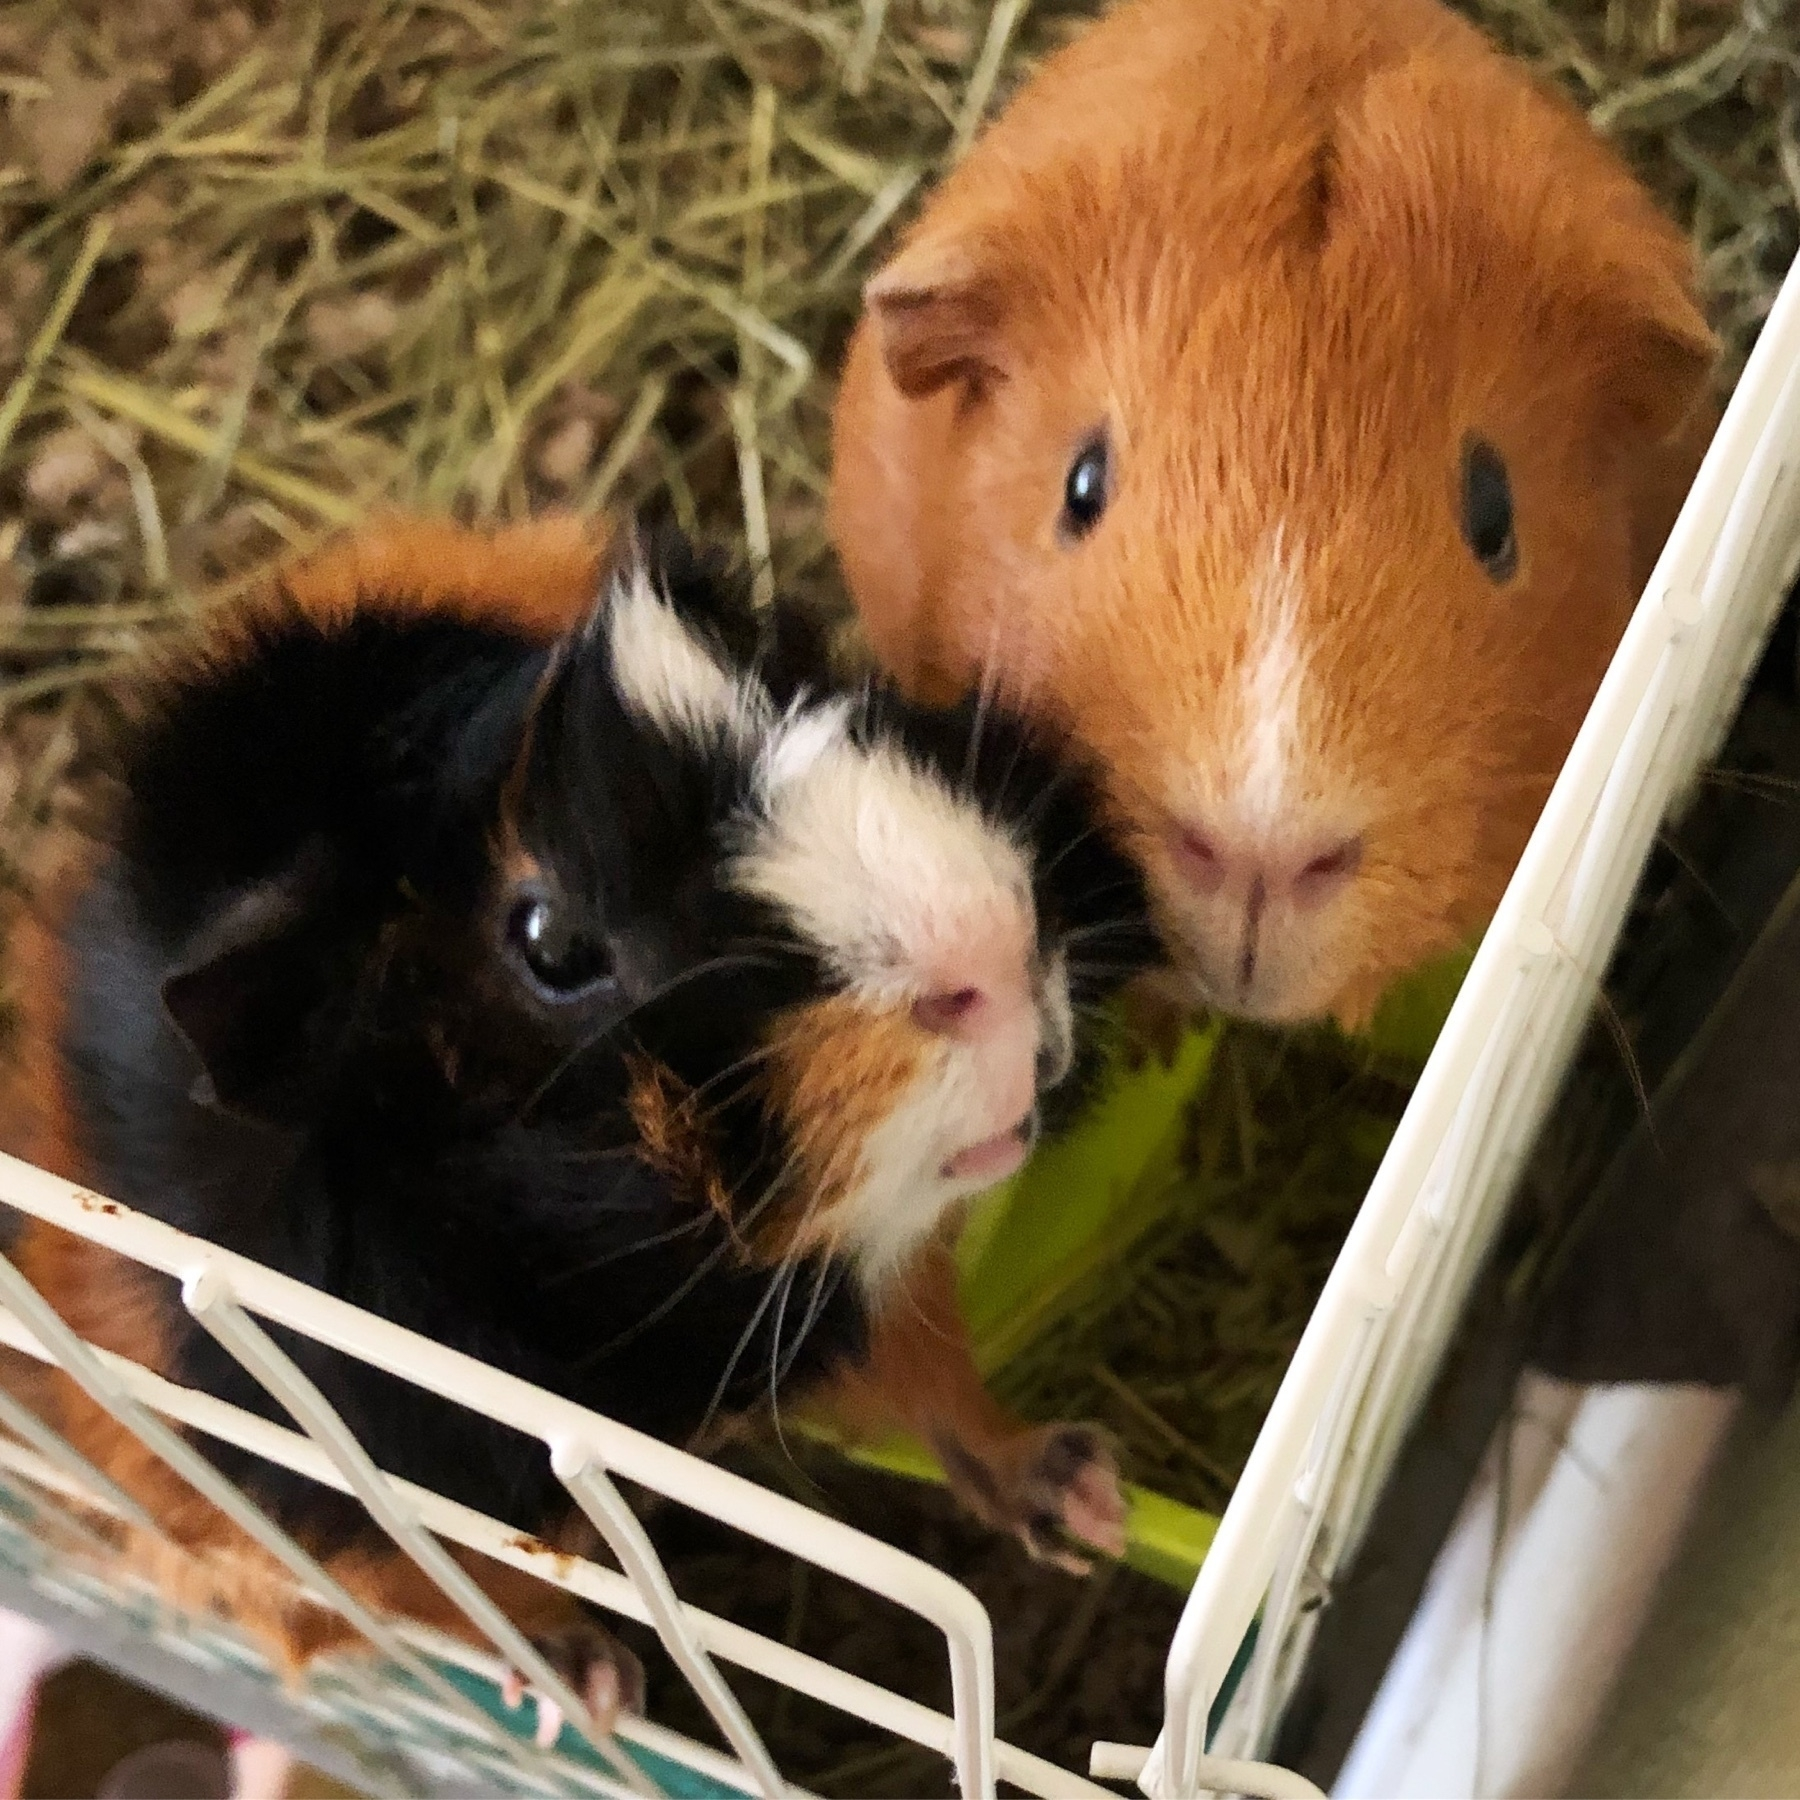 Two guinea pigs, now deceased